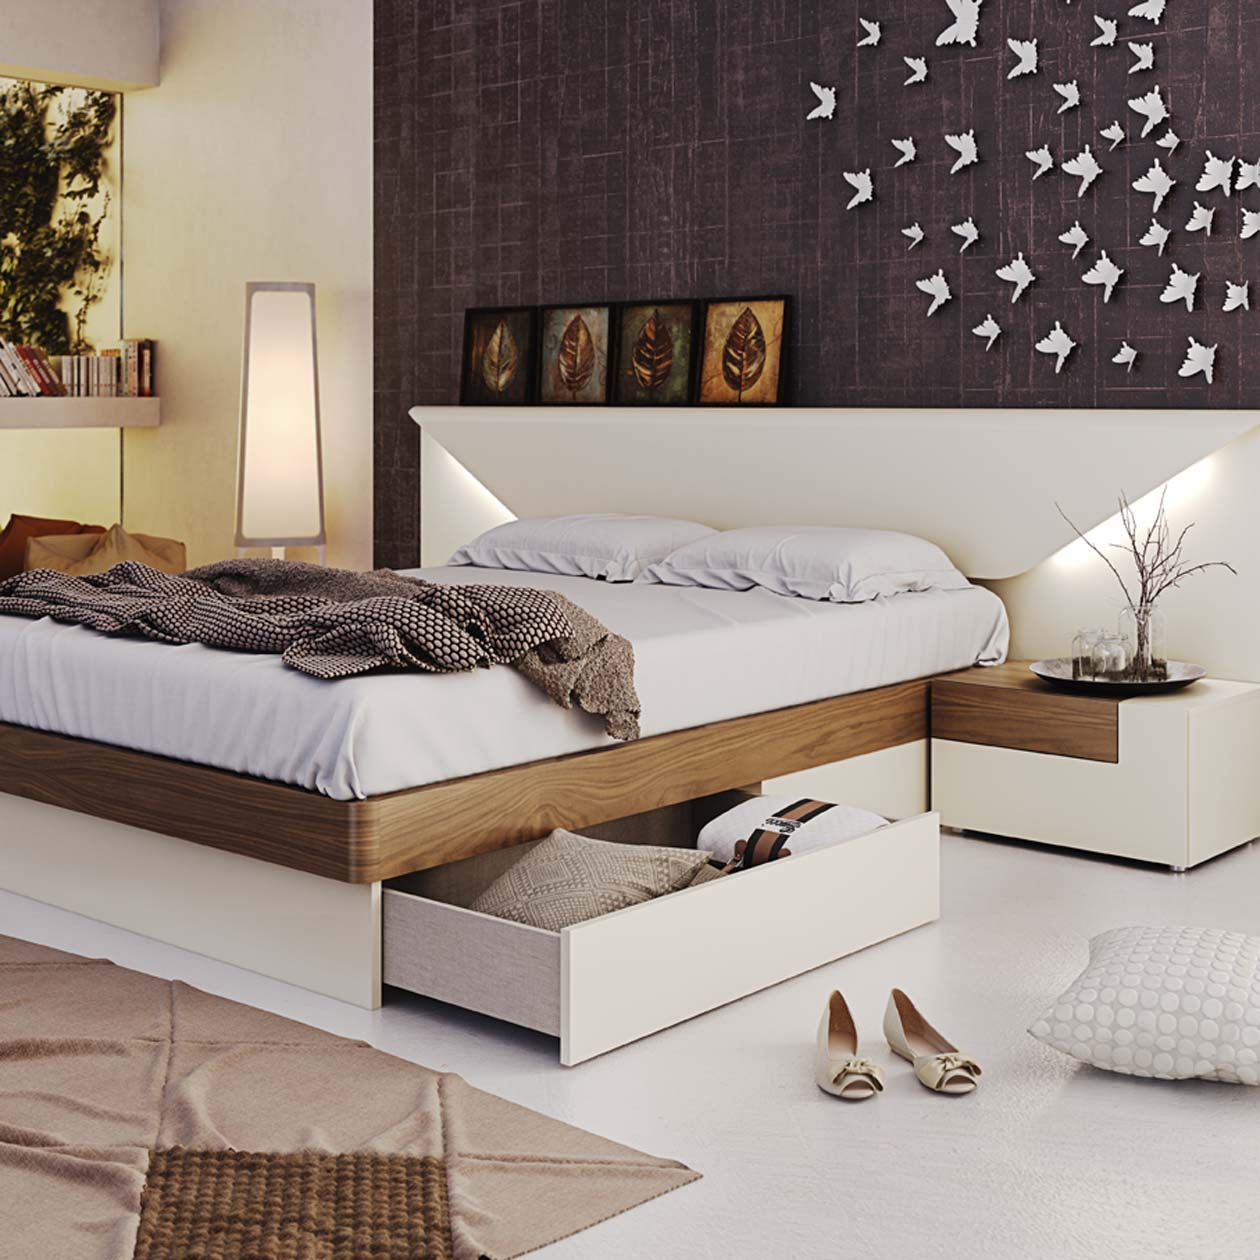 Hydraulic Bed Storage Beds With Drawers Or Hydraulic Lift Storage